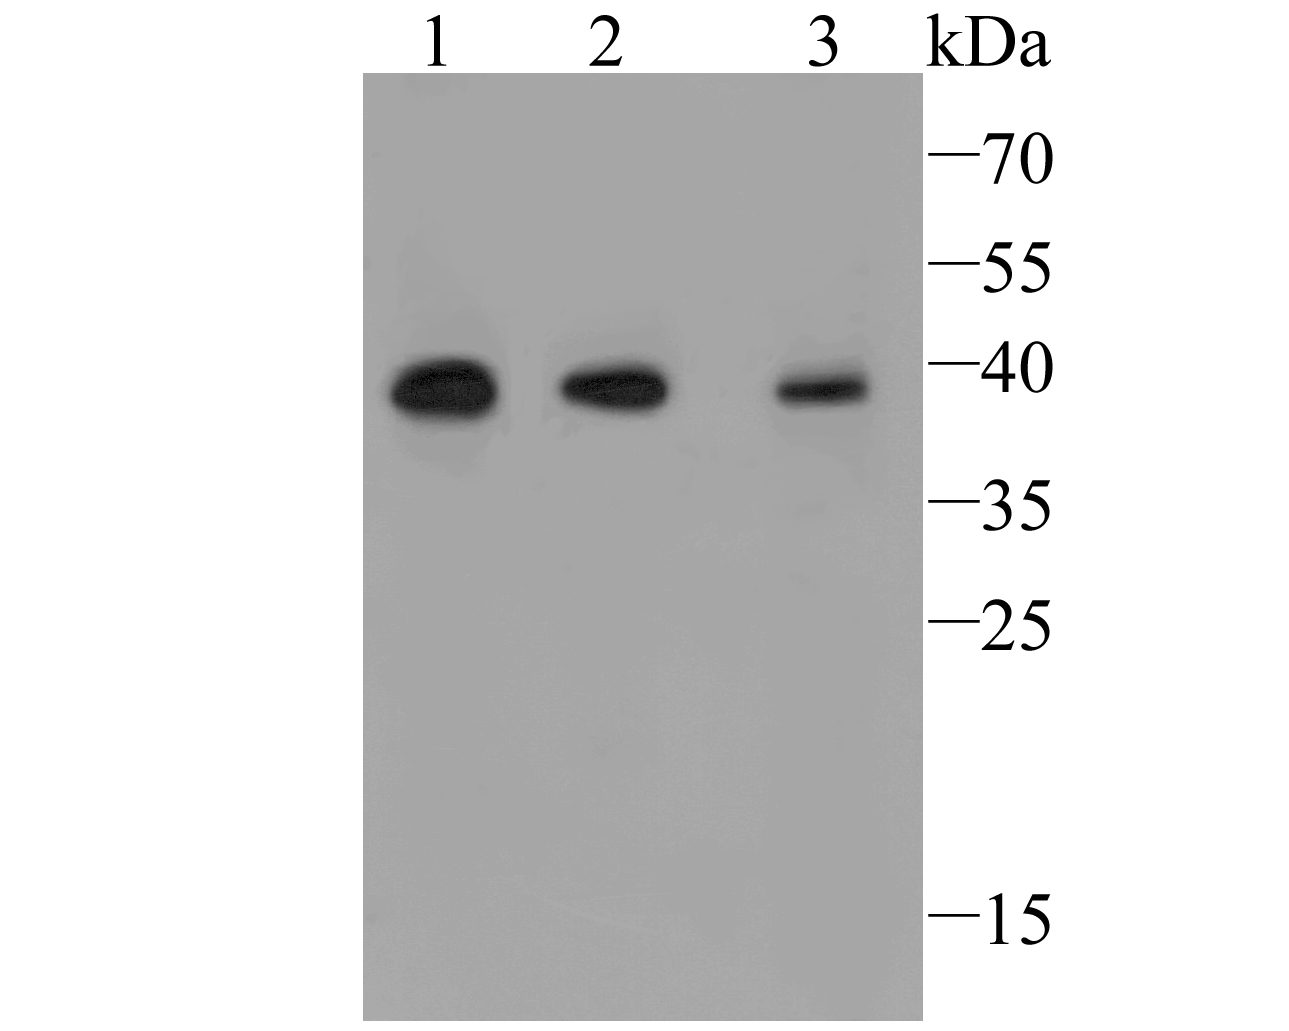 Western blot analysis of TMEM163 on different lysate. Proteins were transferred to a PVDF membrane and blocked with 5% BSA in PBS for 1 hour at room temperature. The primary antibody (ER1901-91, 1/1000) was used in 5% BSA at room temperature for 2 hours. Goat Anti-Rabbit IgG - HRP Secondary Antibody (HA1001) at 1:5,000 dilution was used for 1 hour at room temperature.<br /> Positive control: <br /> Lane 1: Human skin tissue lysate<br /> Lane 2: Human small intestine tissue lysate<br /> Lane 3: Human mouse colon tissue lysate<br /> <br /> Predicted band size: 31 kDa<br /> Observed band size: 38 kDa